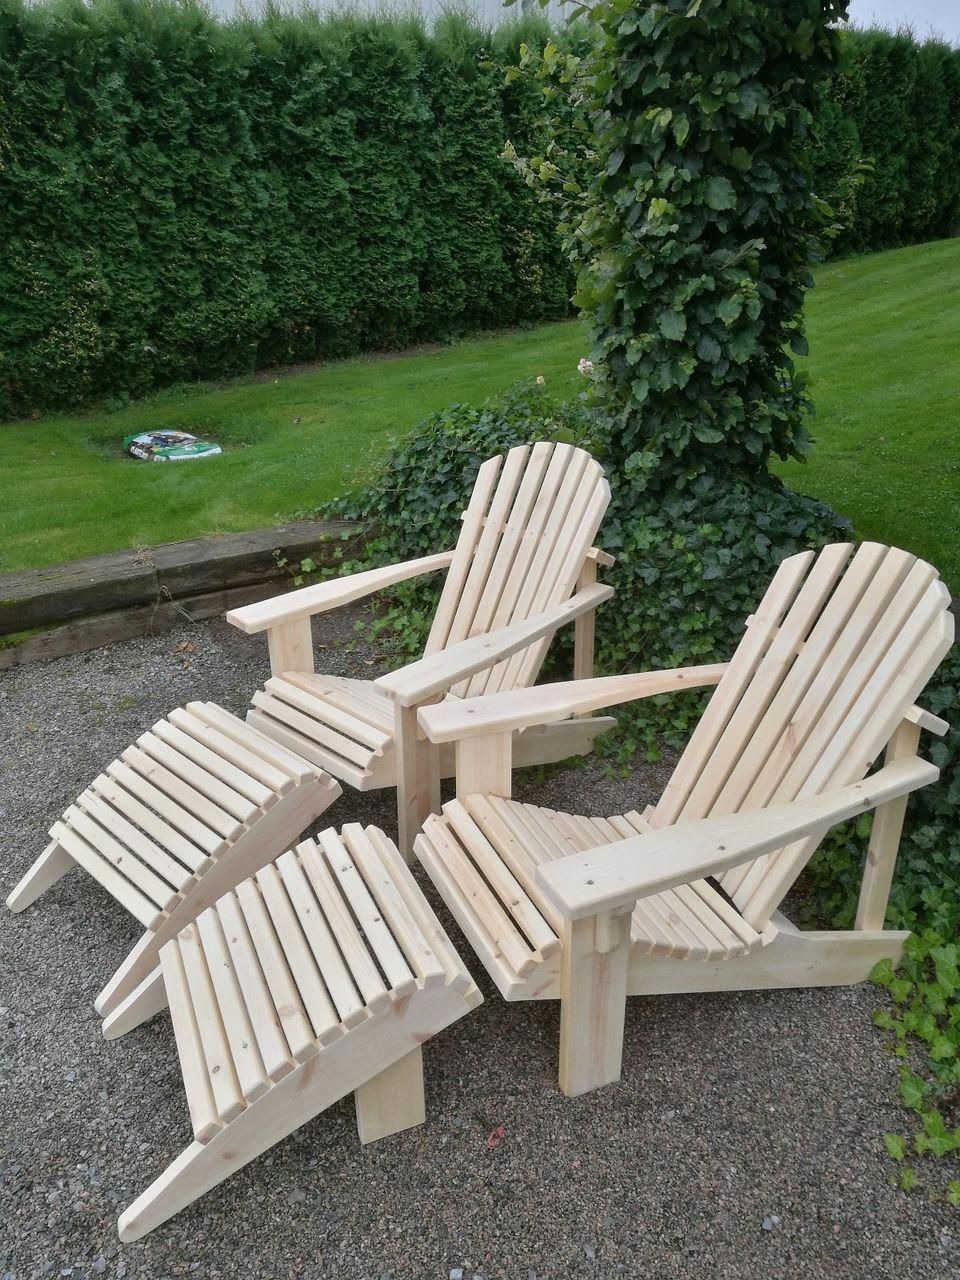 Chairs At Ashley Furniture Ashleyfurniturechairs Product Id 3008809412 Fauteuil Bois Chaise De Jardin Meuble Terrasse